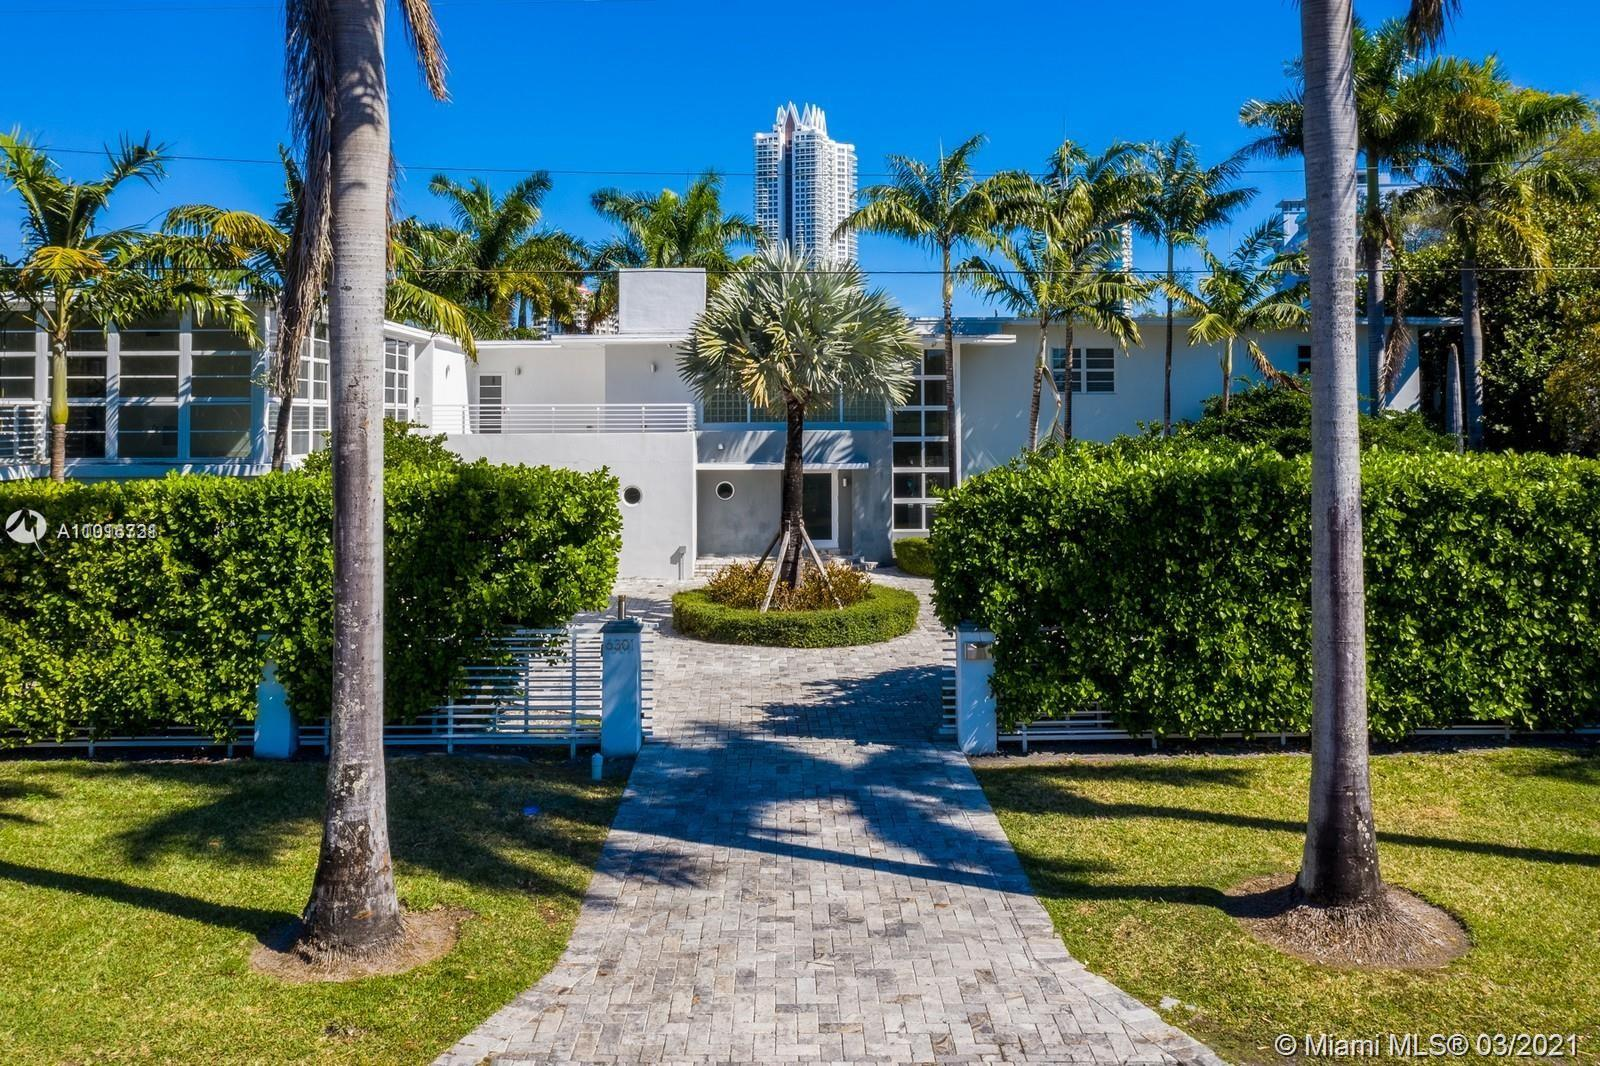 6301 Pine Tree Dr., Miami Beach, Florida 33141